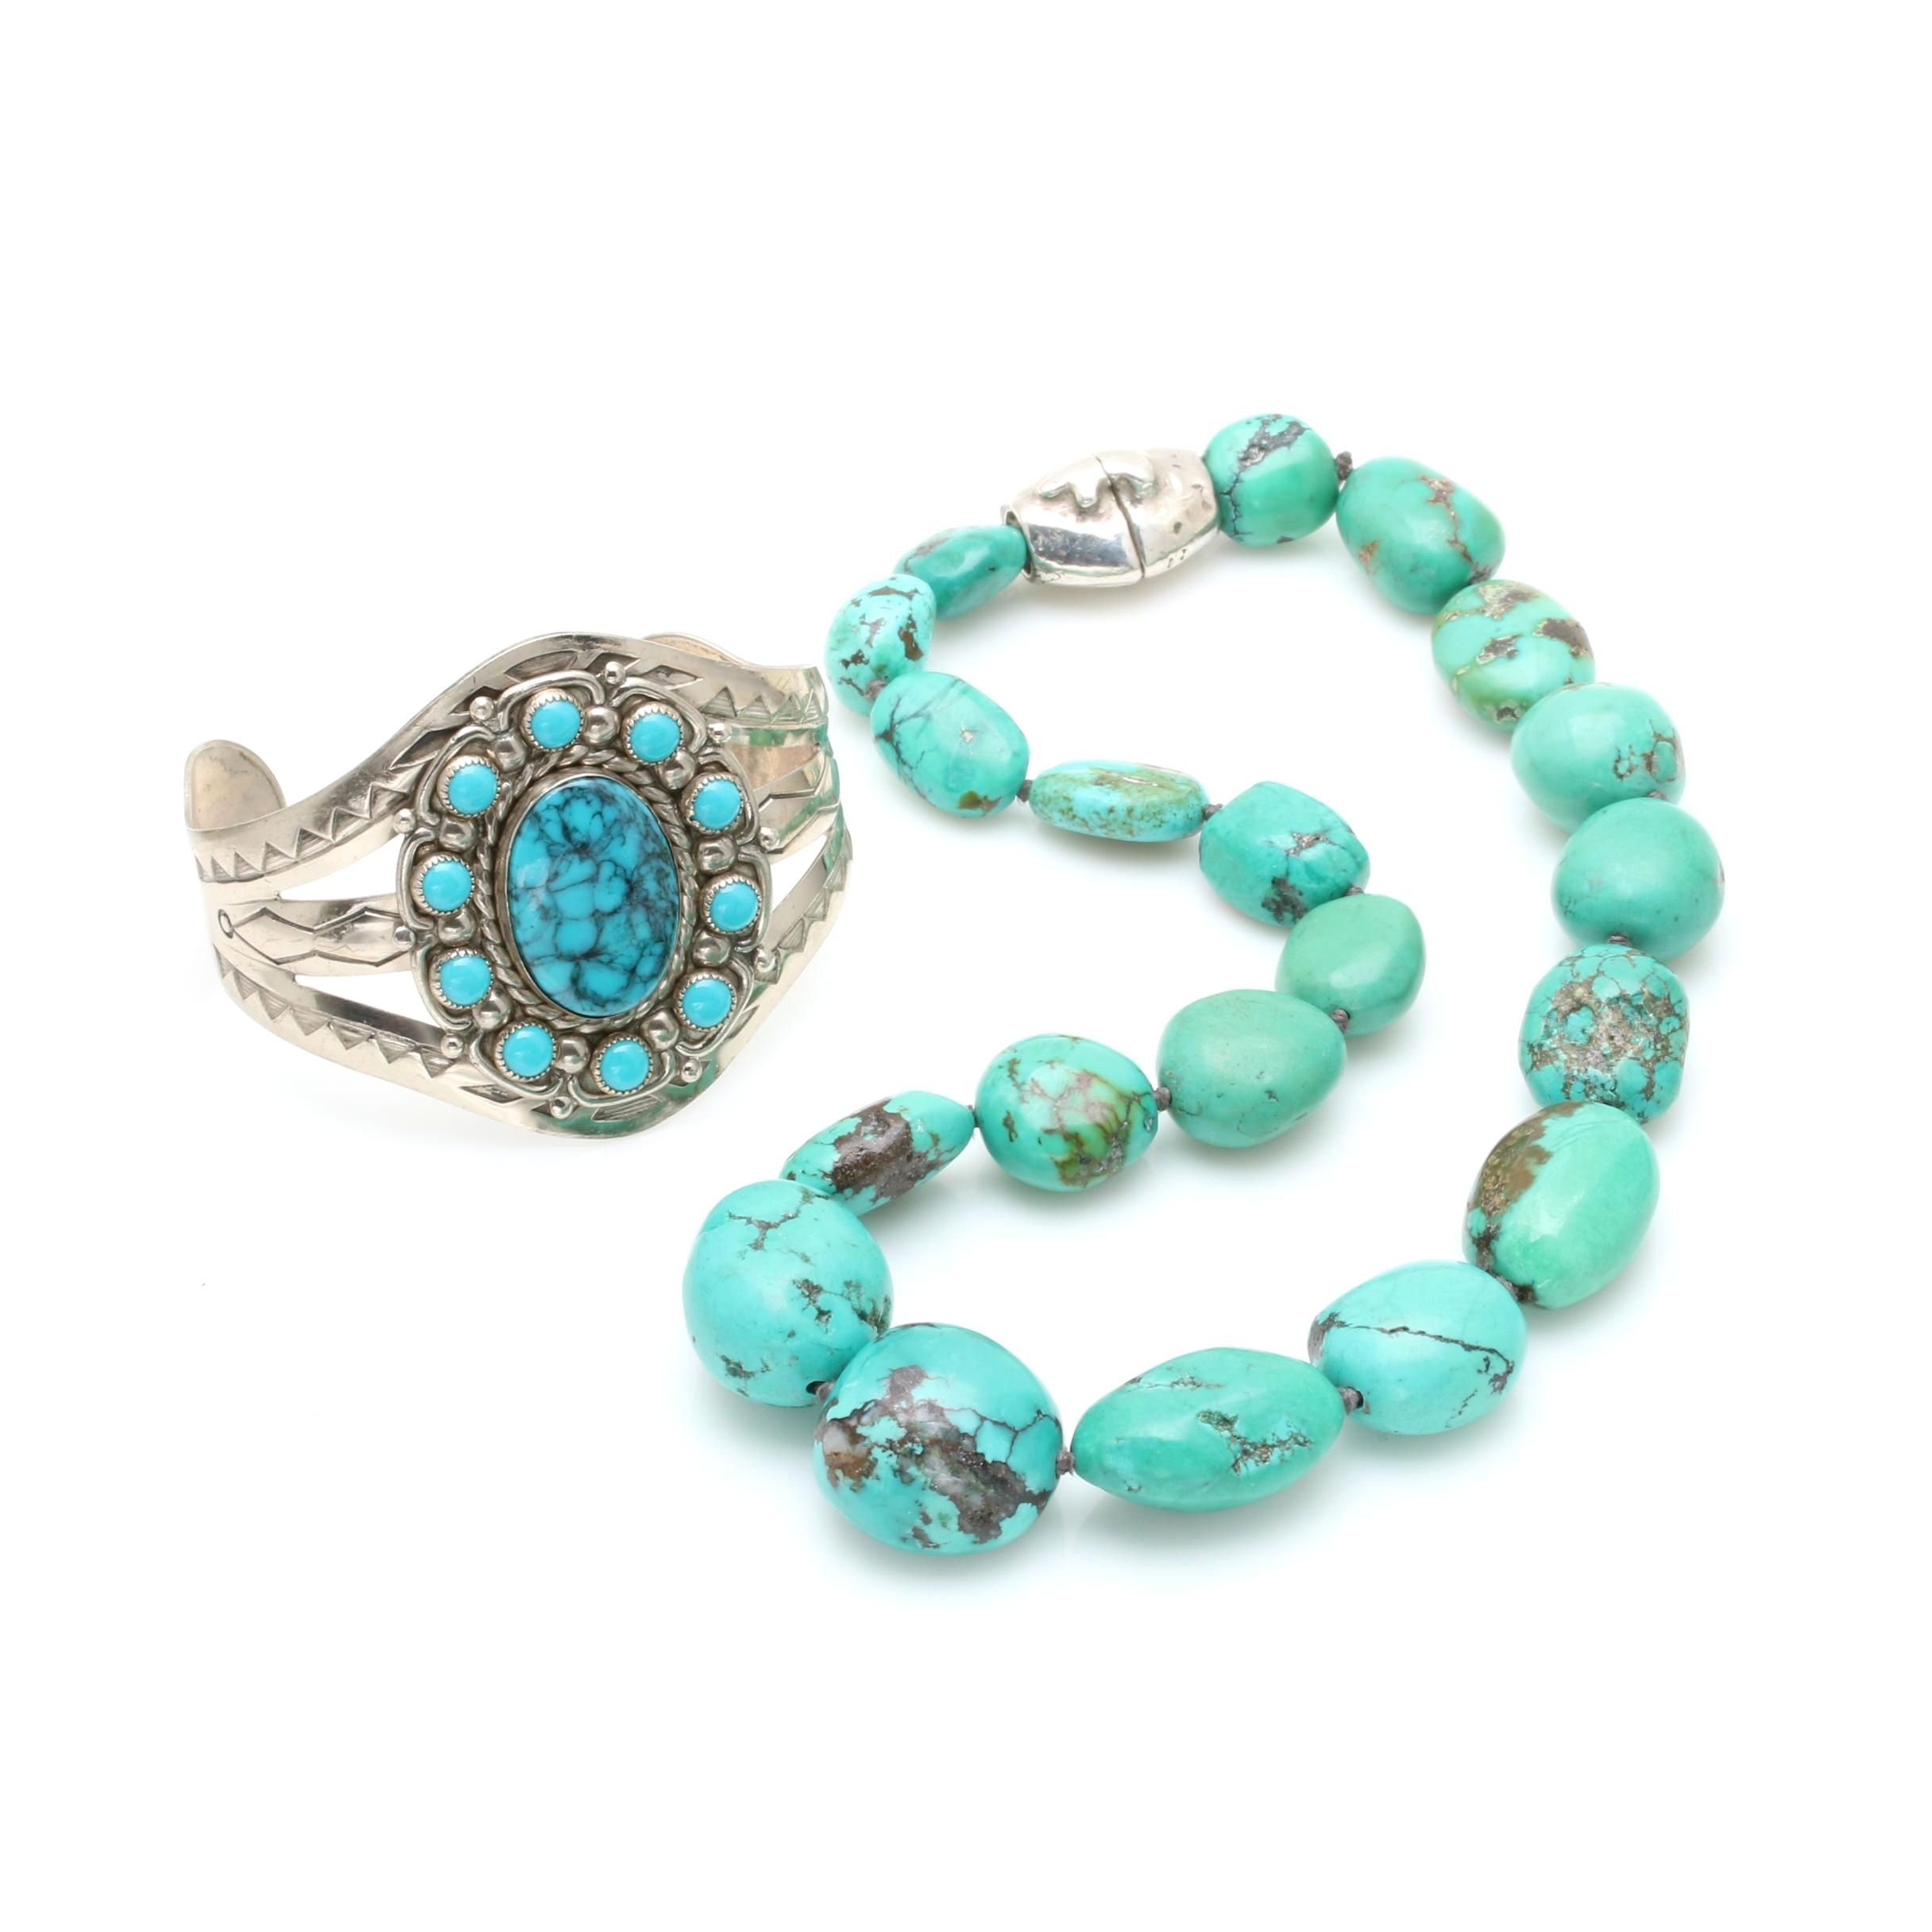 Southwestern Style Imitation Turquoise Cuff and Sterling Silver Howlite Necklace